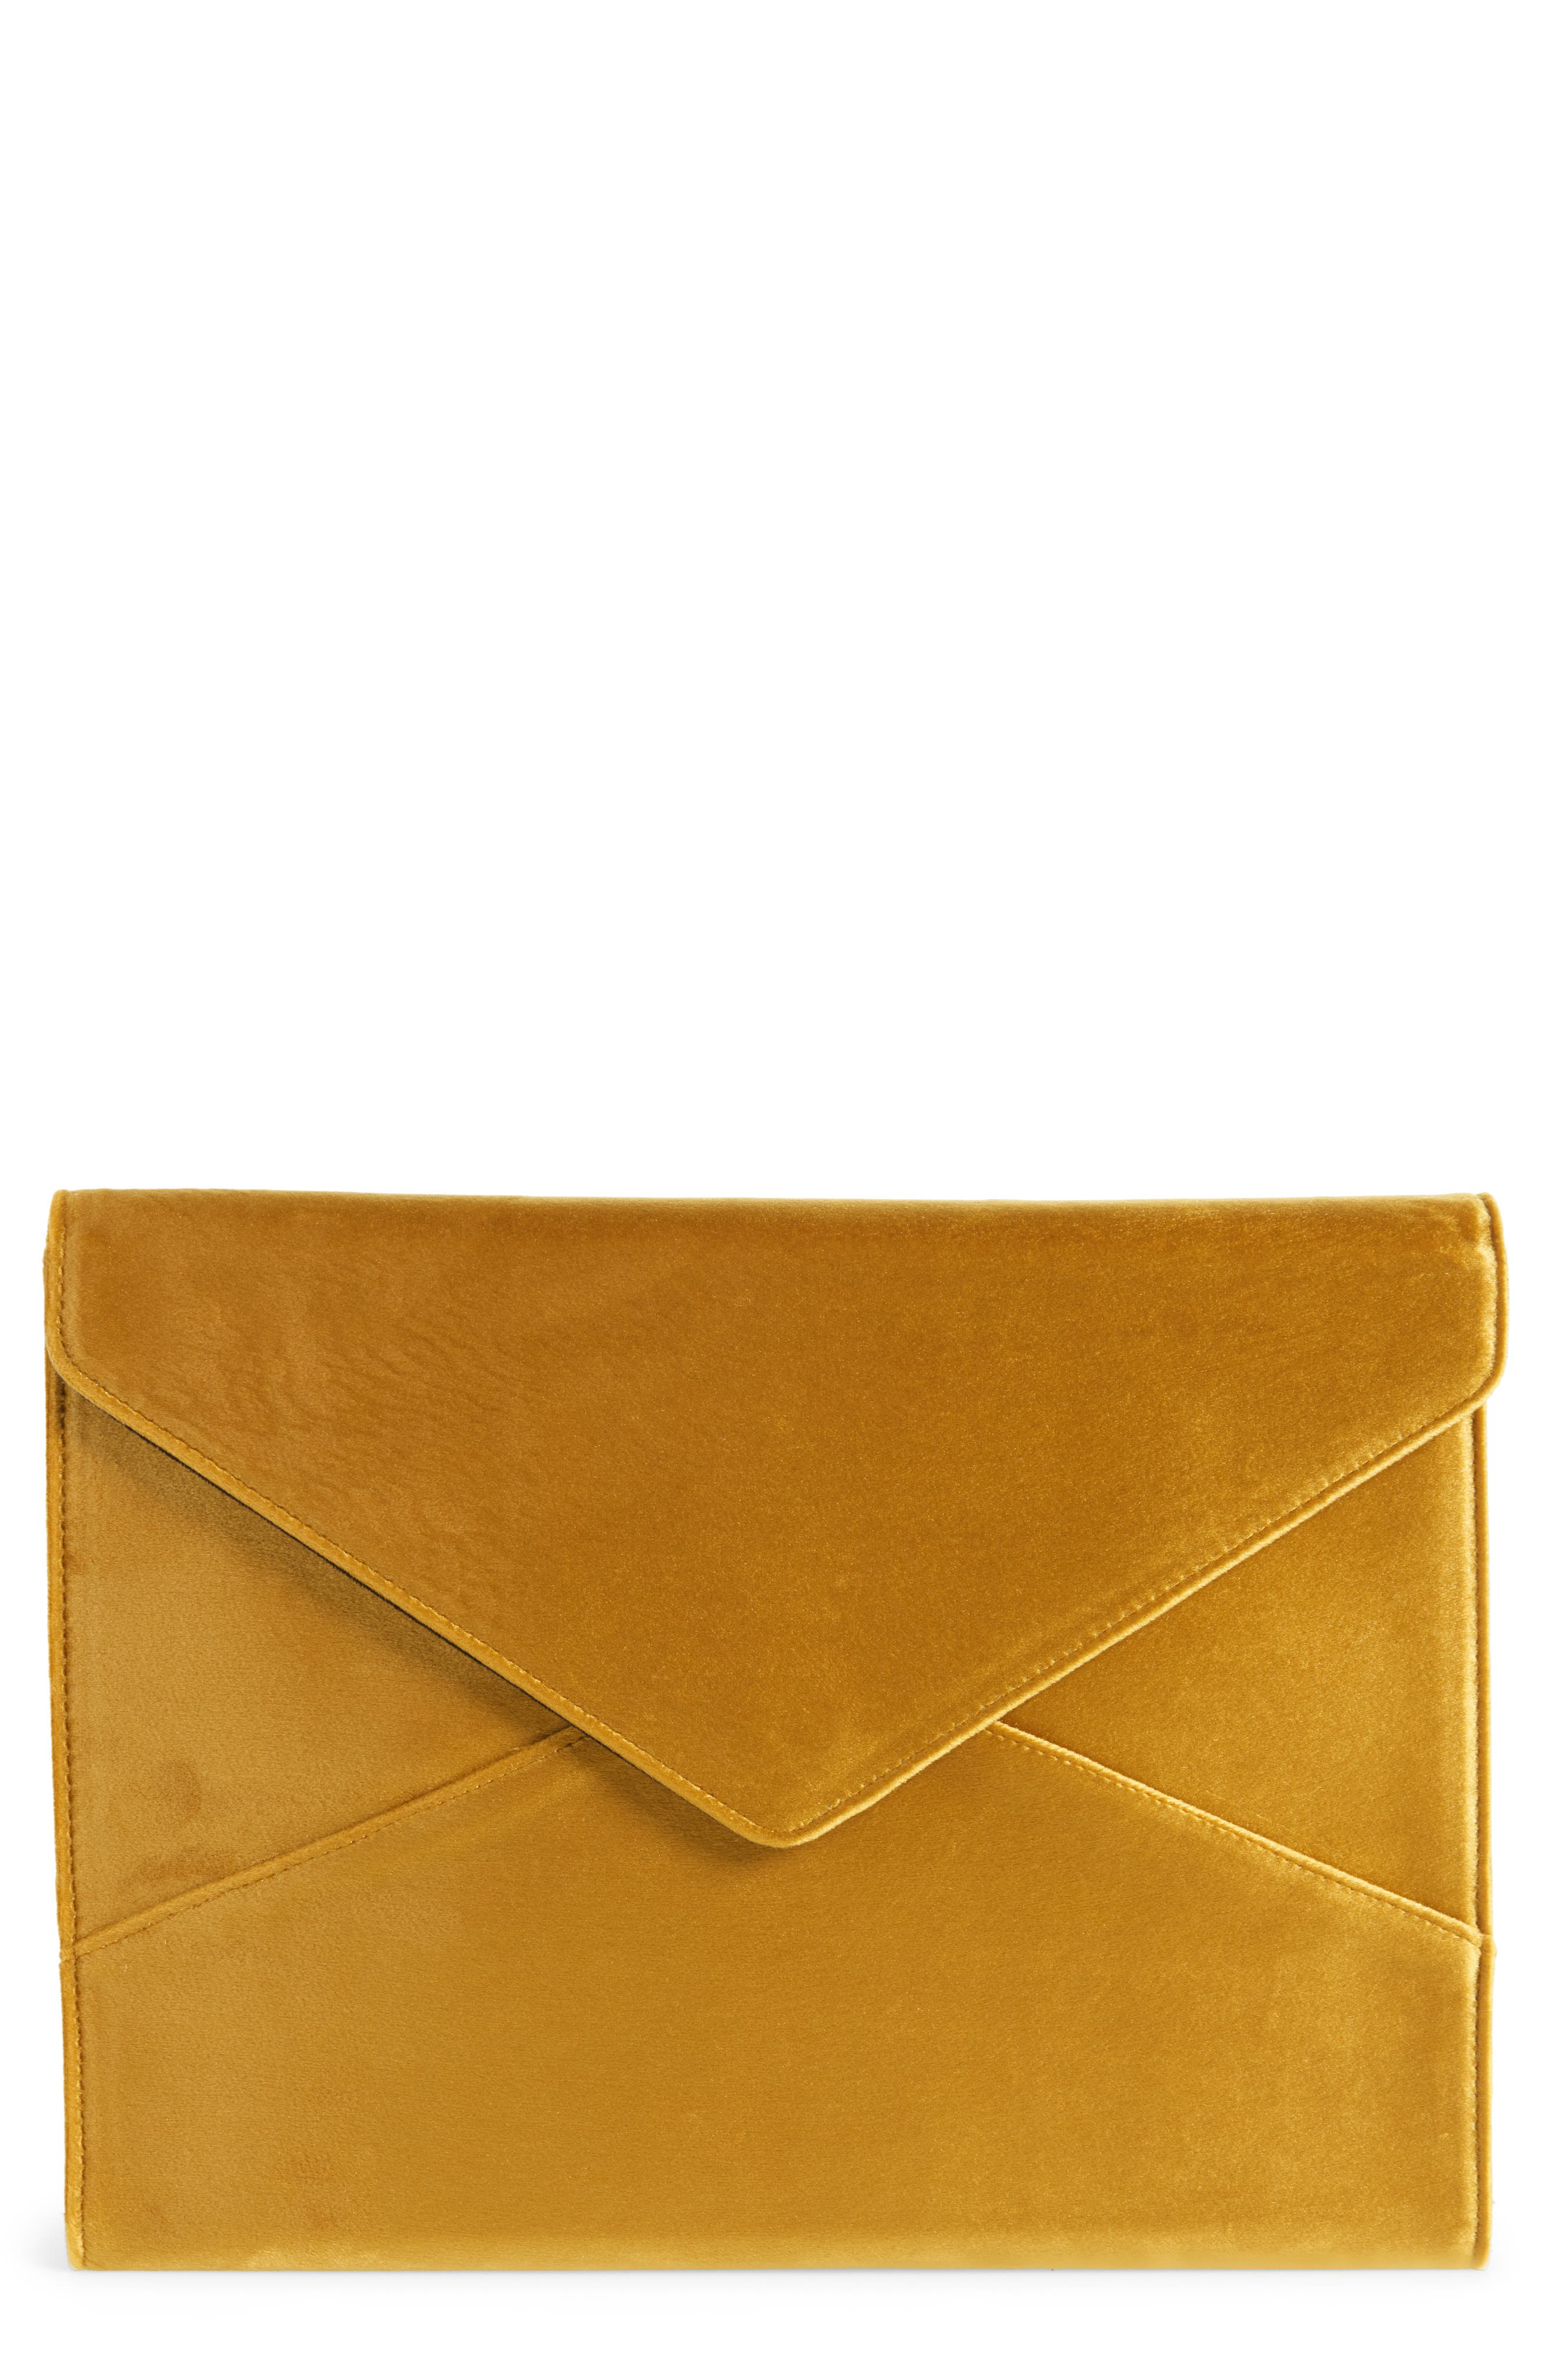 Alternate Image 1 Selected - Sonix Canary Velvet Laptop Clutch